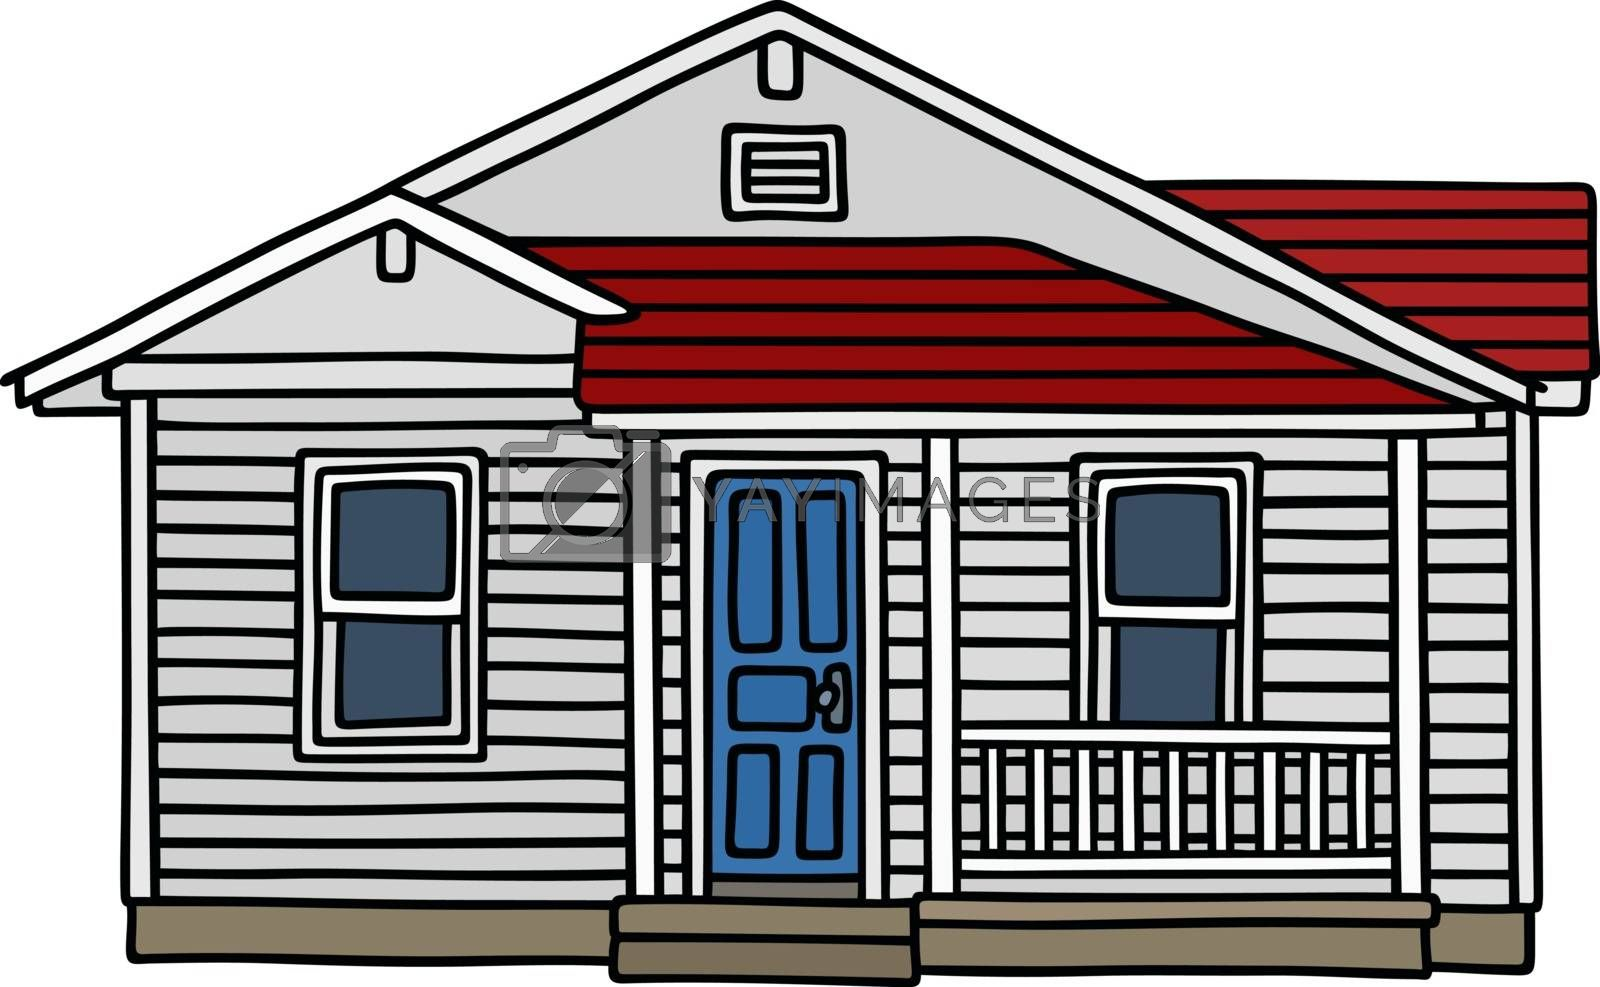 Royalty free image of White wooden house by vostal